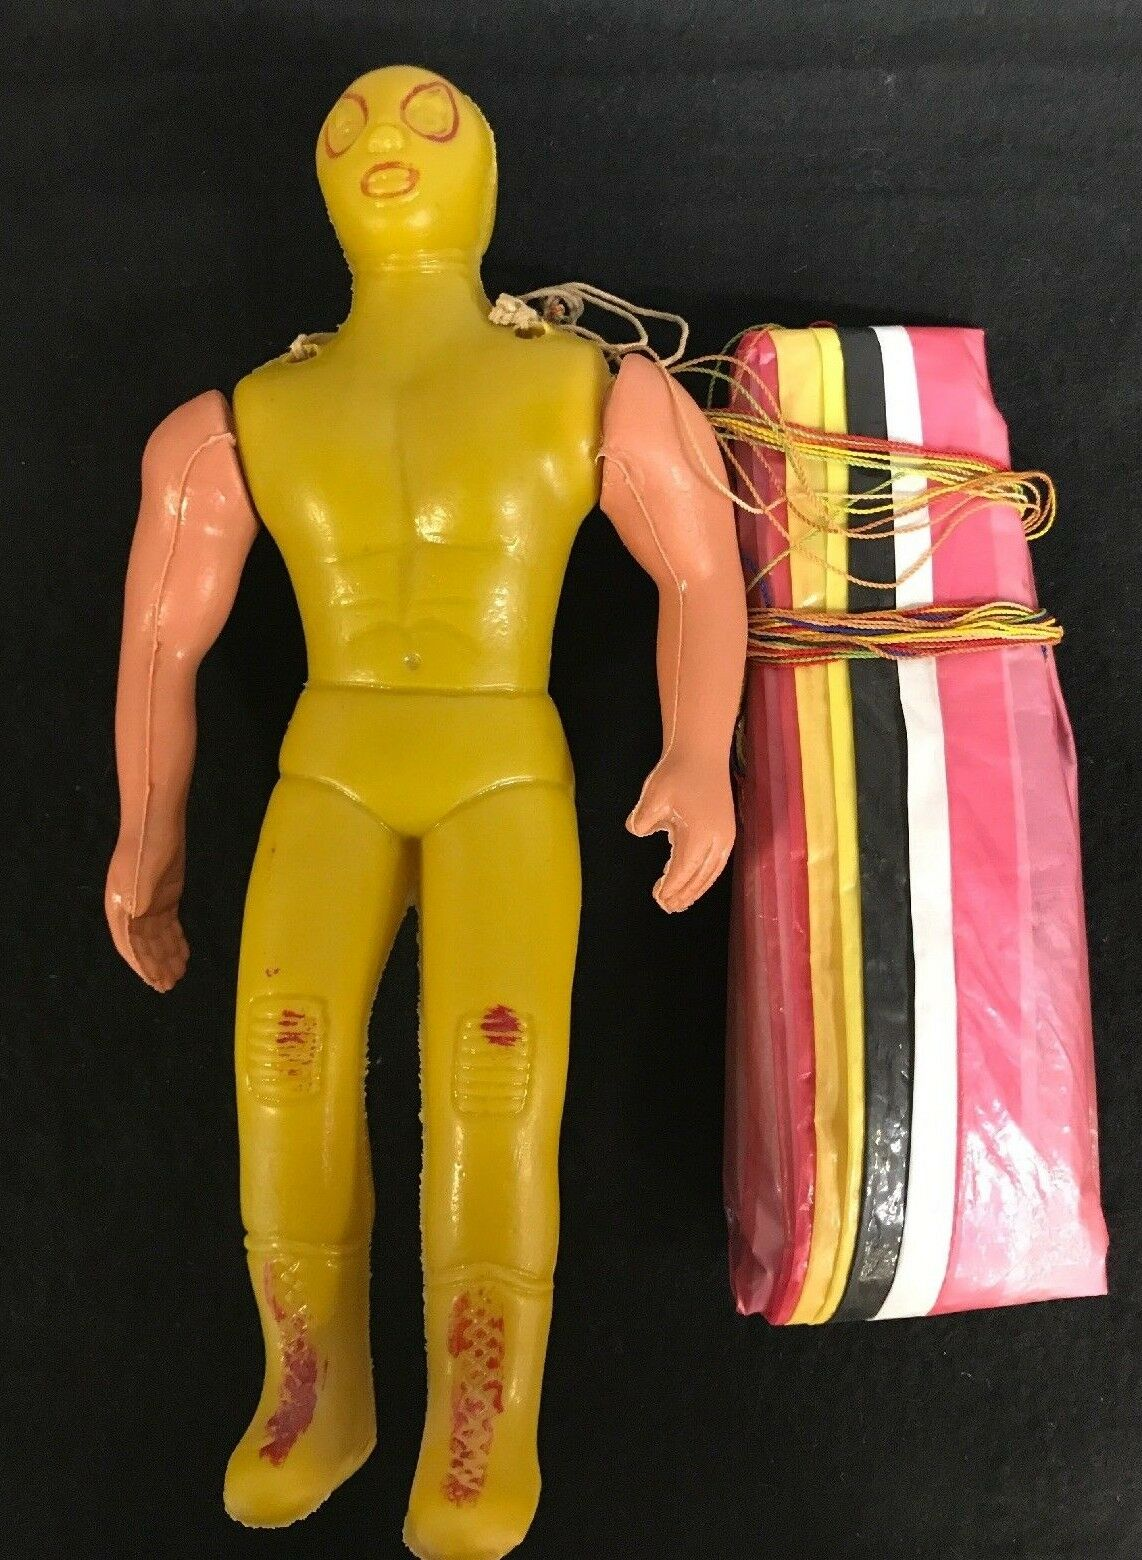 Blow Mold Parachute Luchador Vintage Toy wrestler with parachute toy